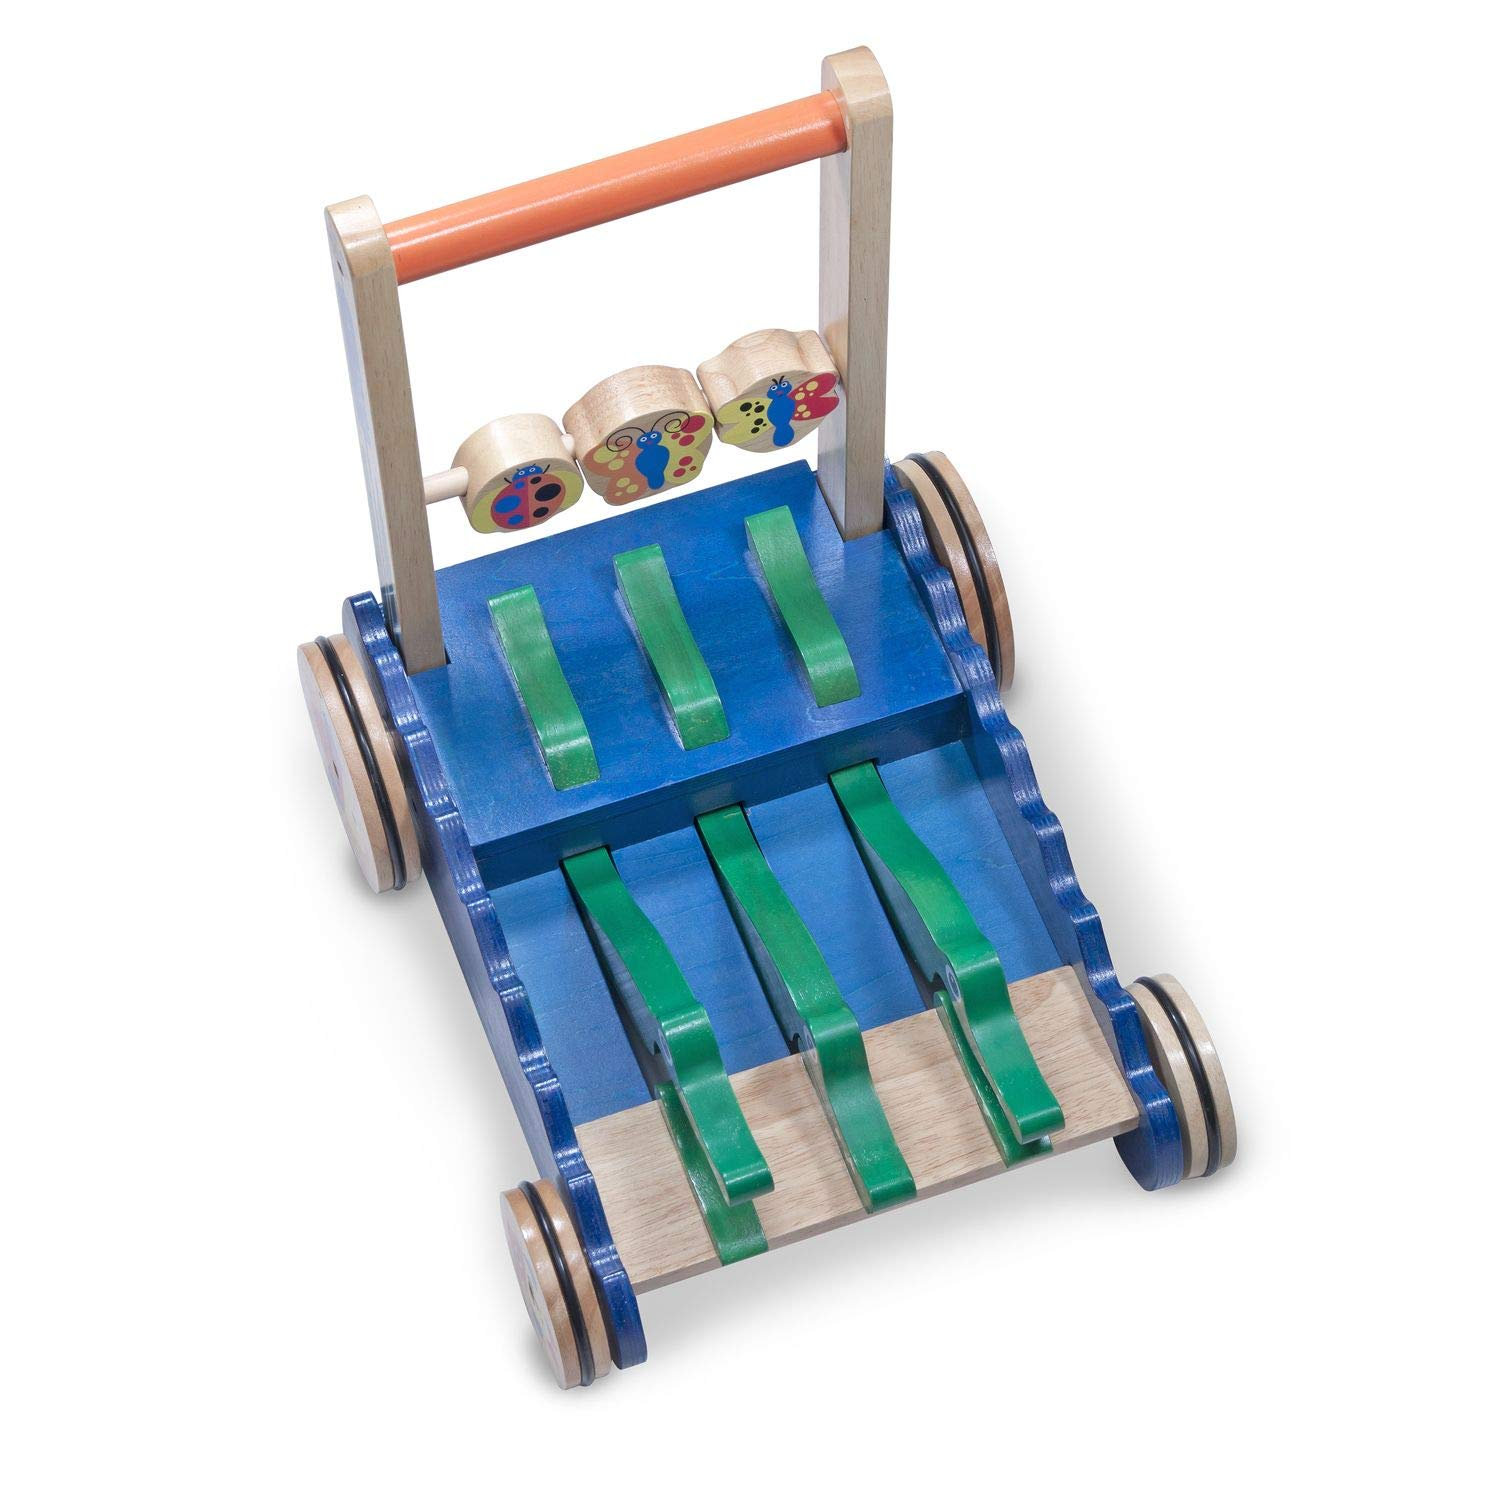 Melissa & Doug Deluxe Chomp and Clack Alligator Wooden Push Toy and Activity Walker by Melissa & Doug (Image #5)